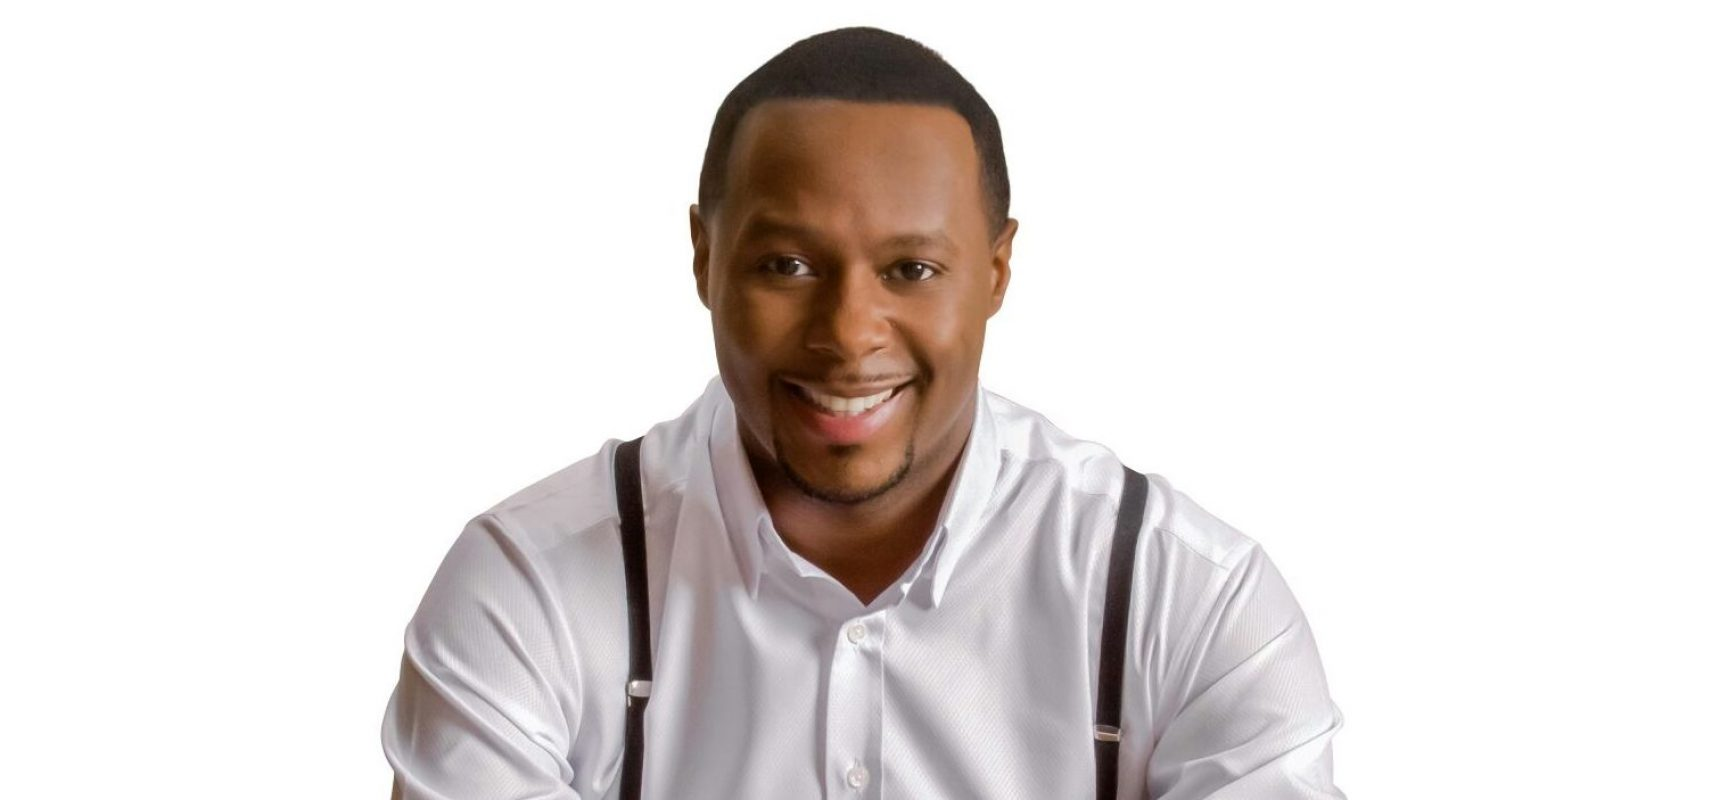 Heaven On Earth by Micah Stampley